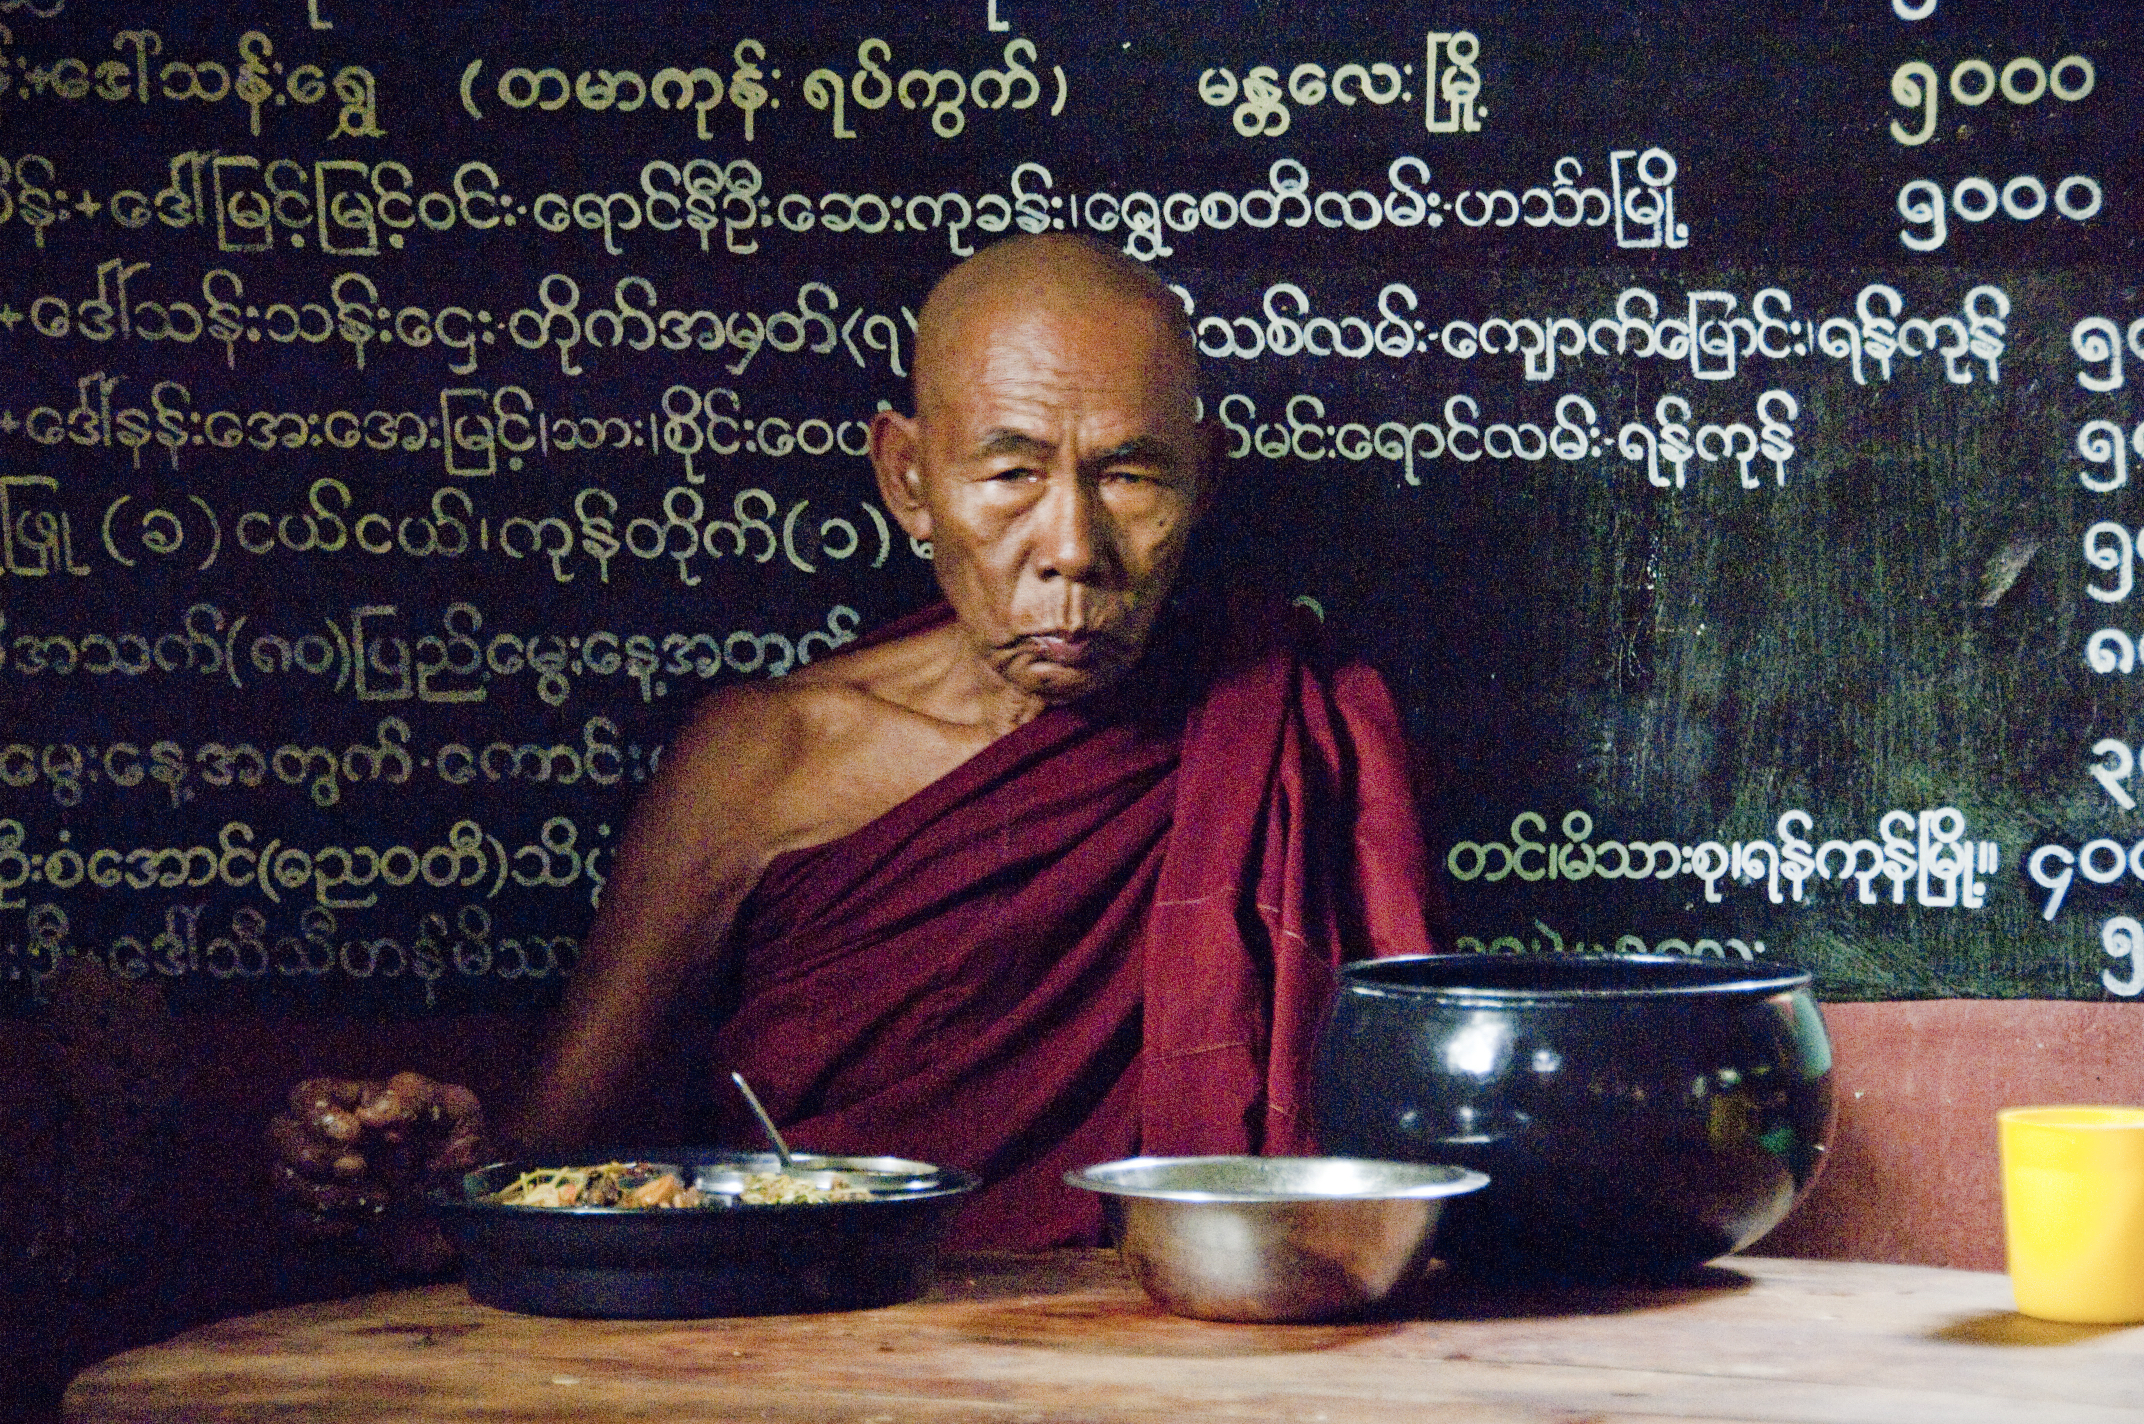 Myanmar, monk eating